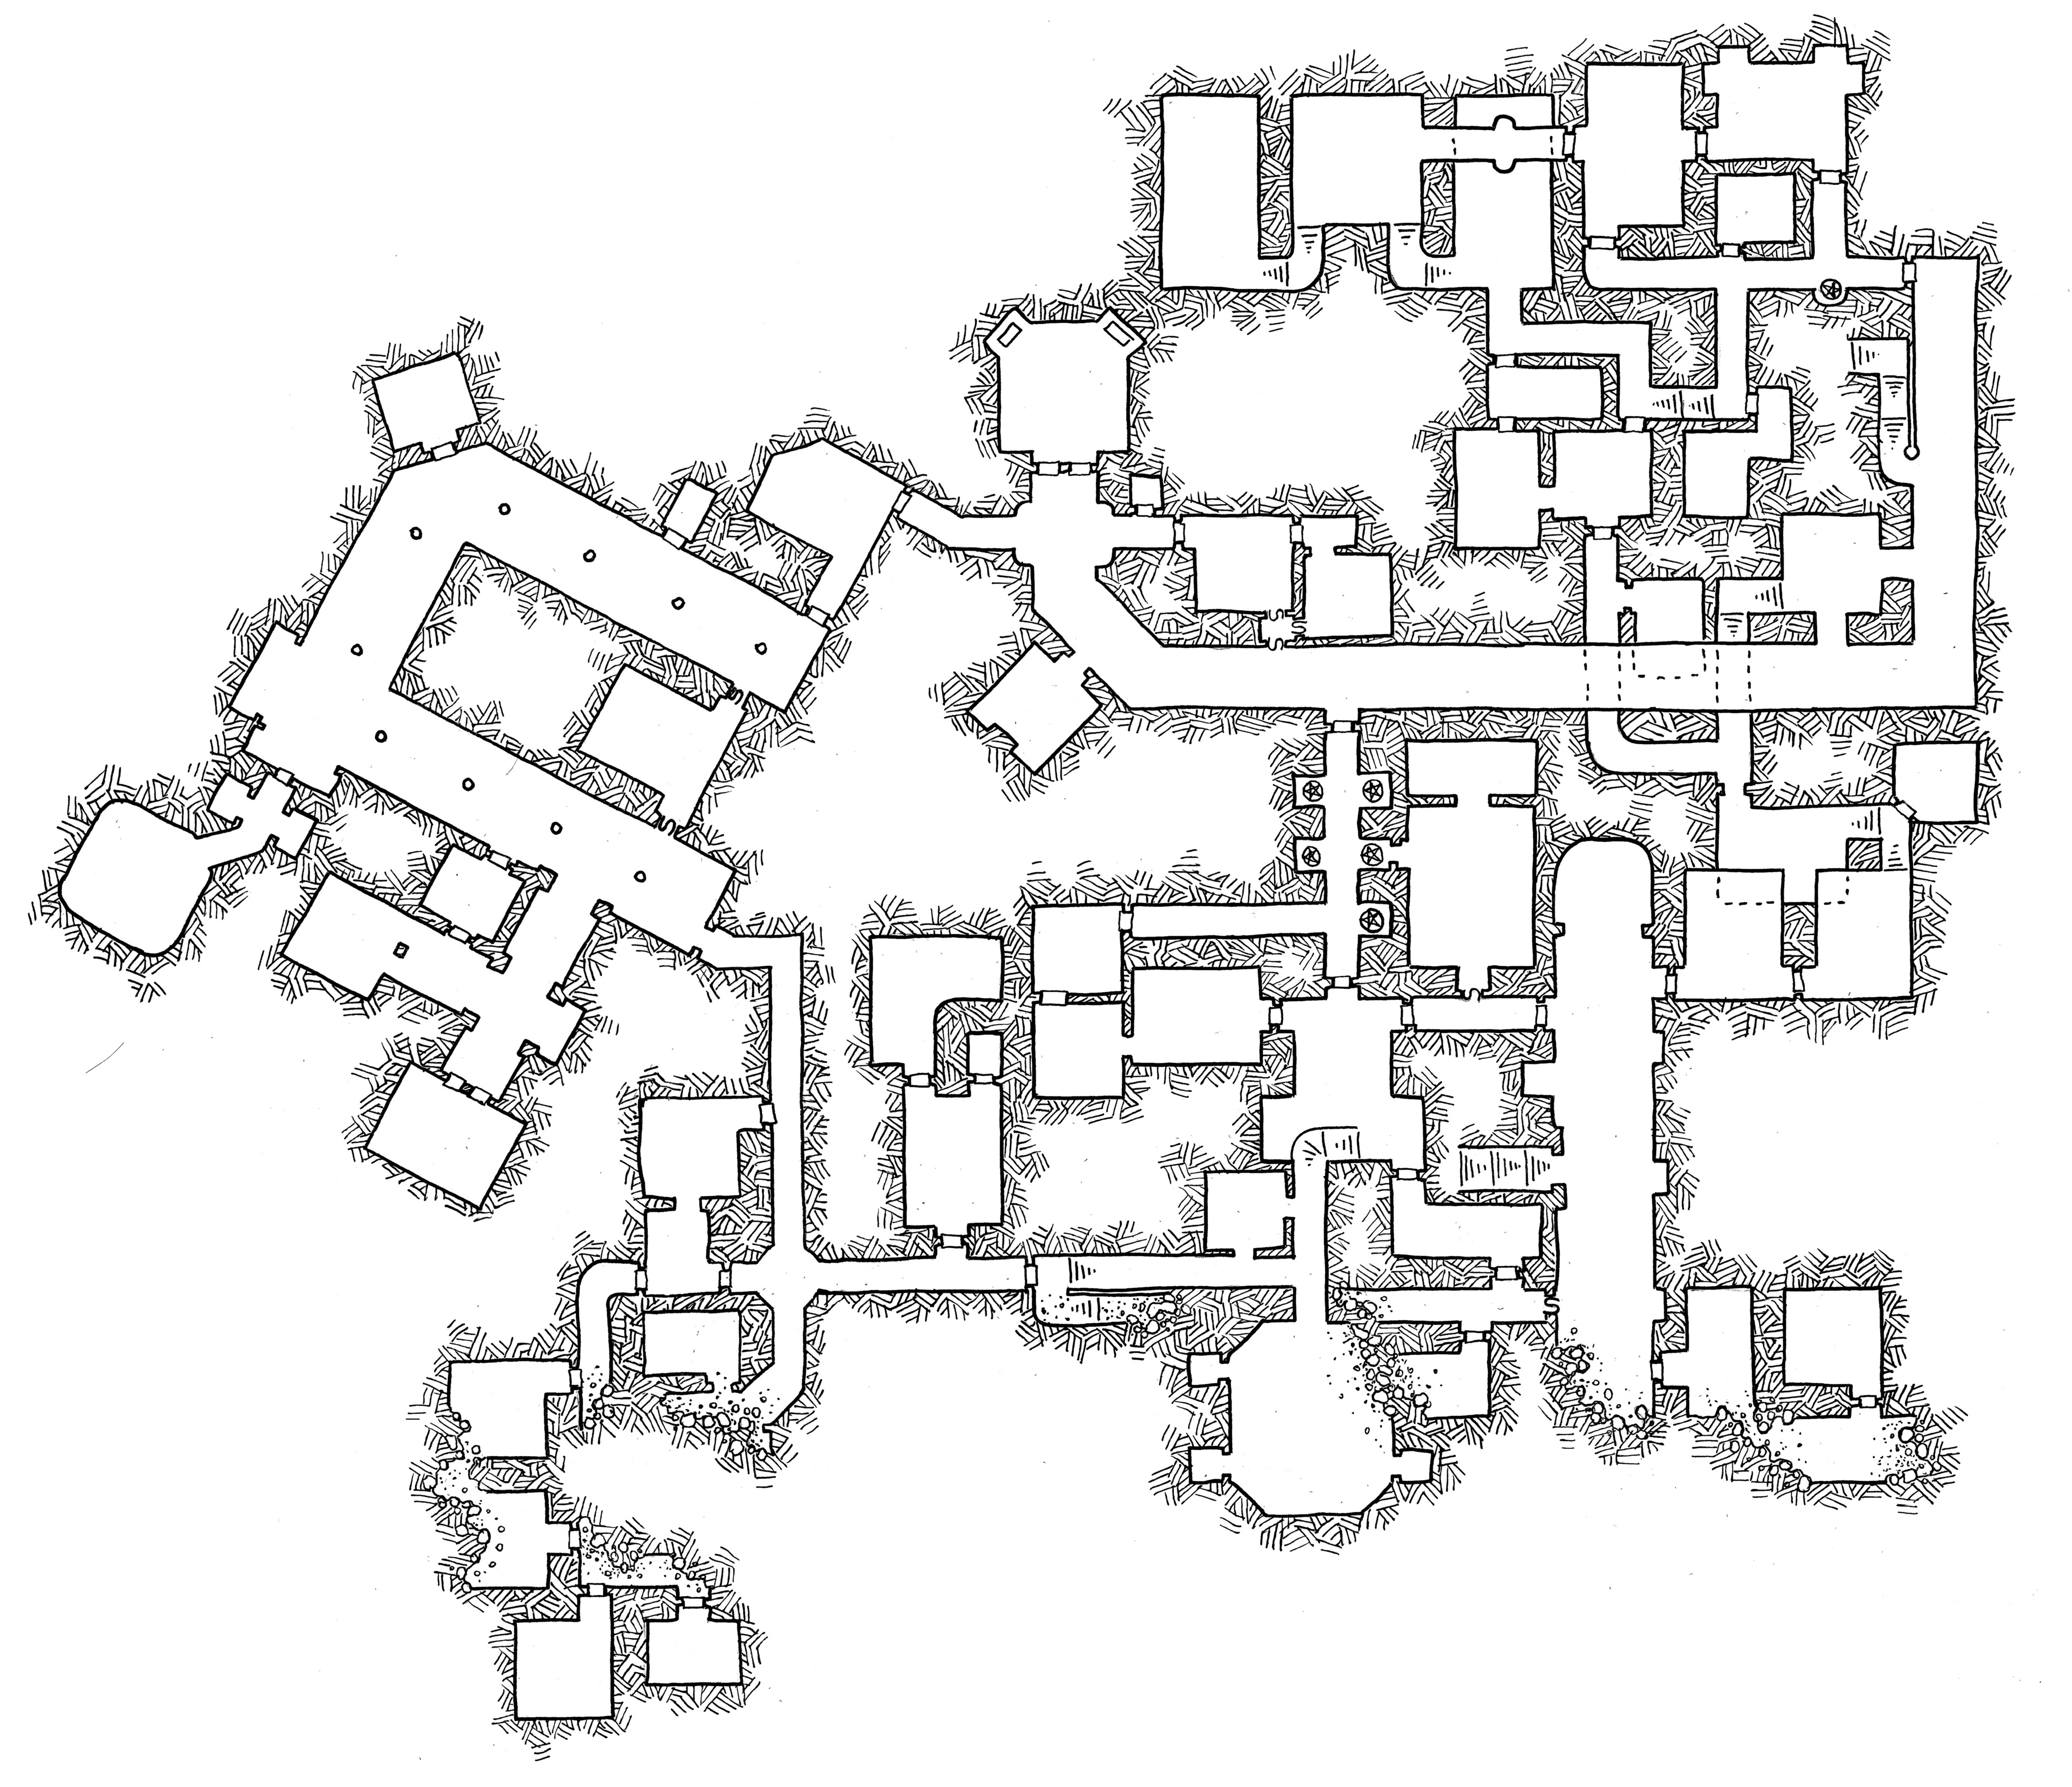 Friday map beneath the ruined palace dyson s dodecahedron